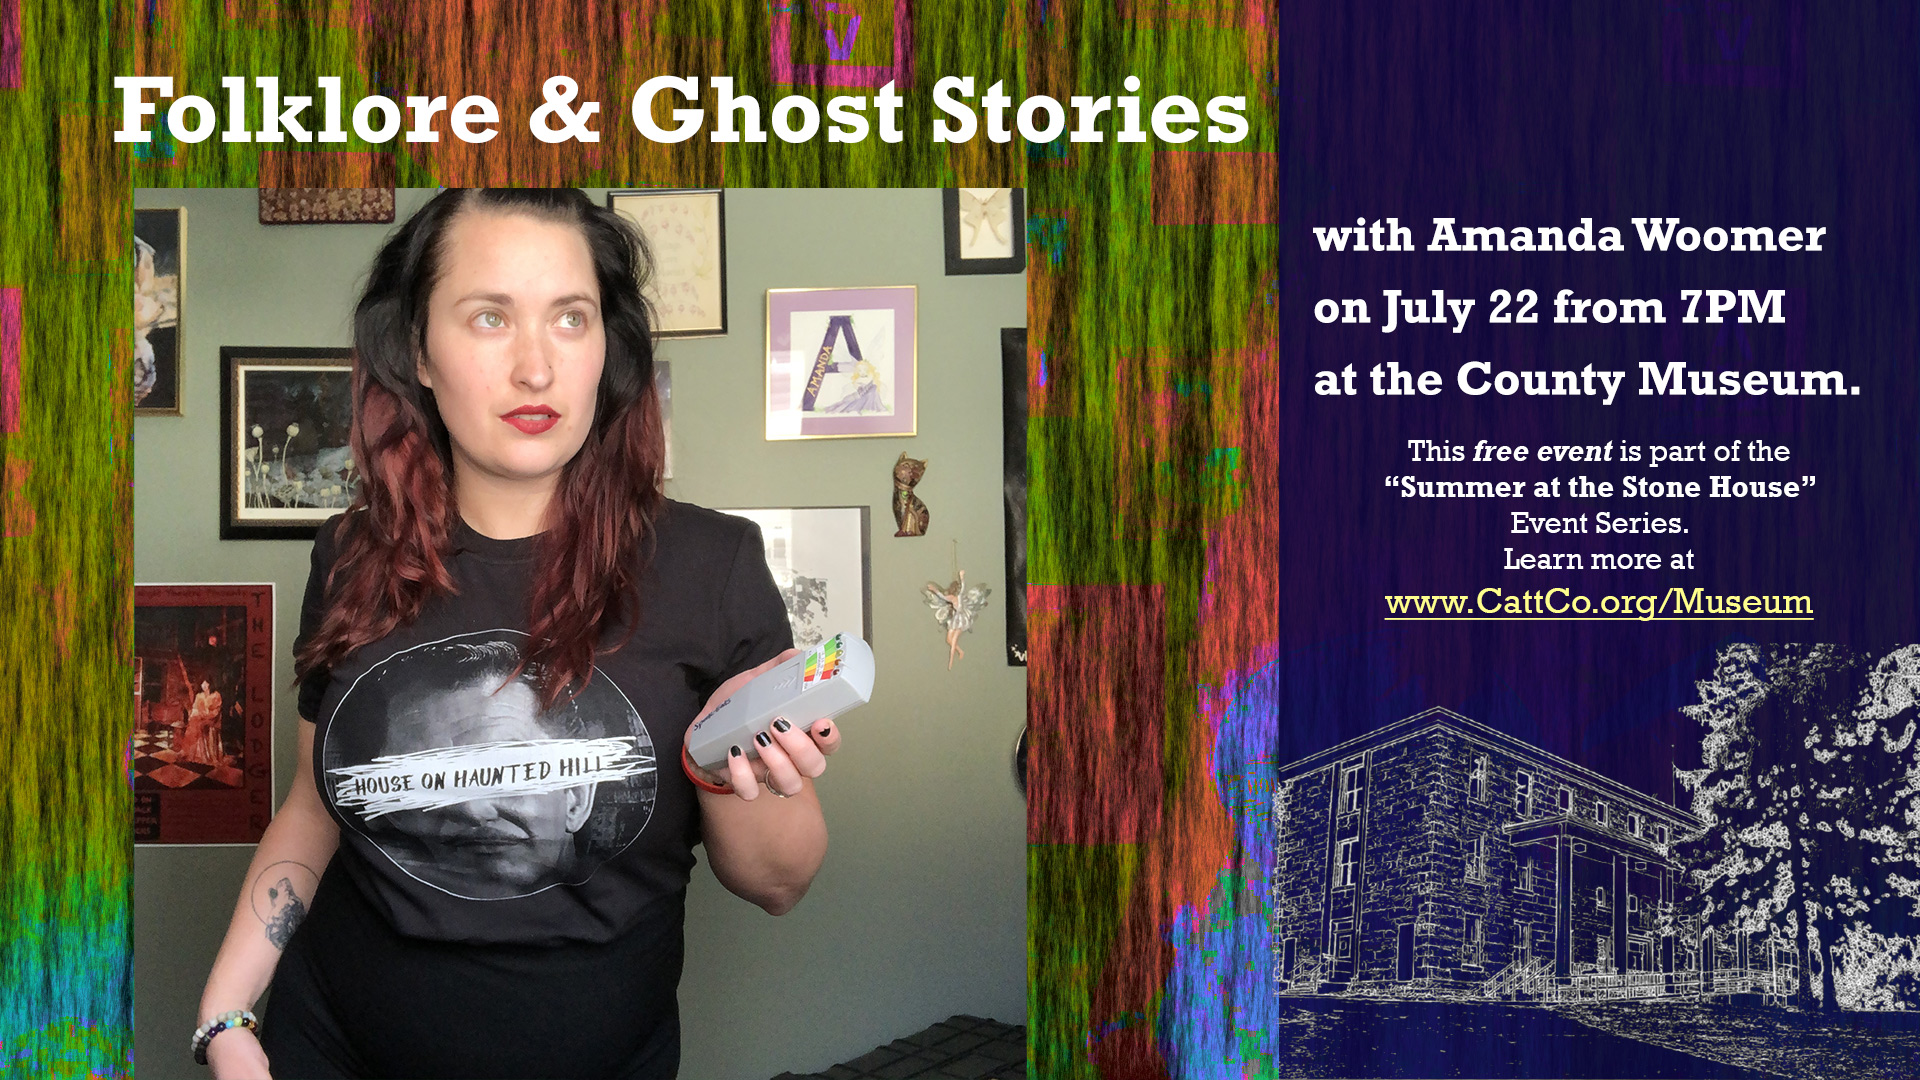 Folklore & Ghost Stories with Amanda Woomer on July 22 from 7PM at the County Museum.